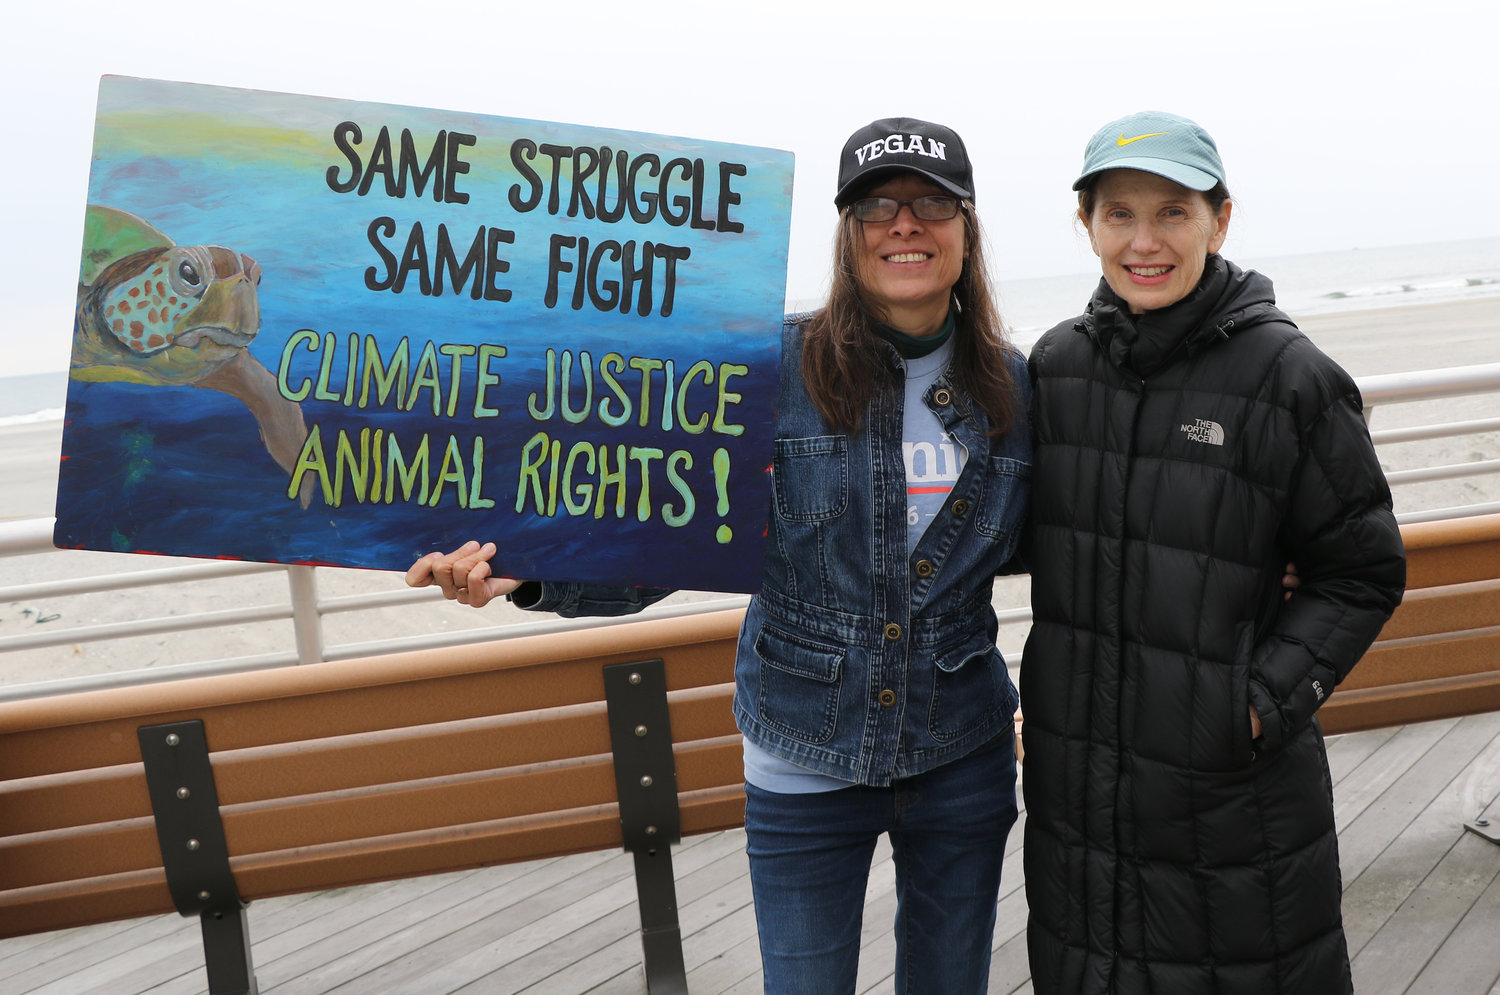 Irene Ippolito and Liz Moseman joined the rally on the boardwalk.